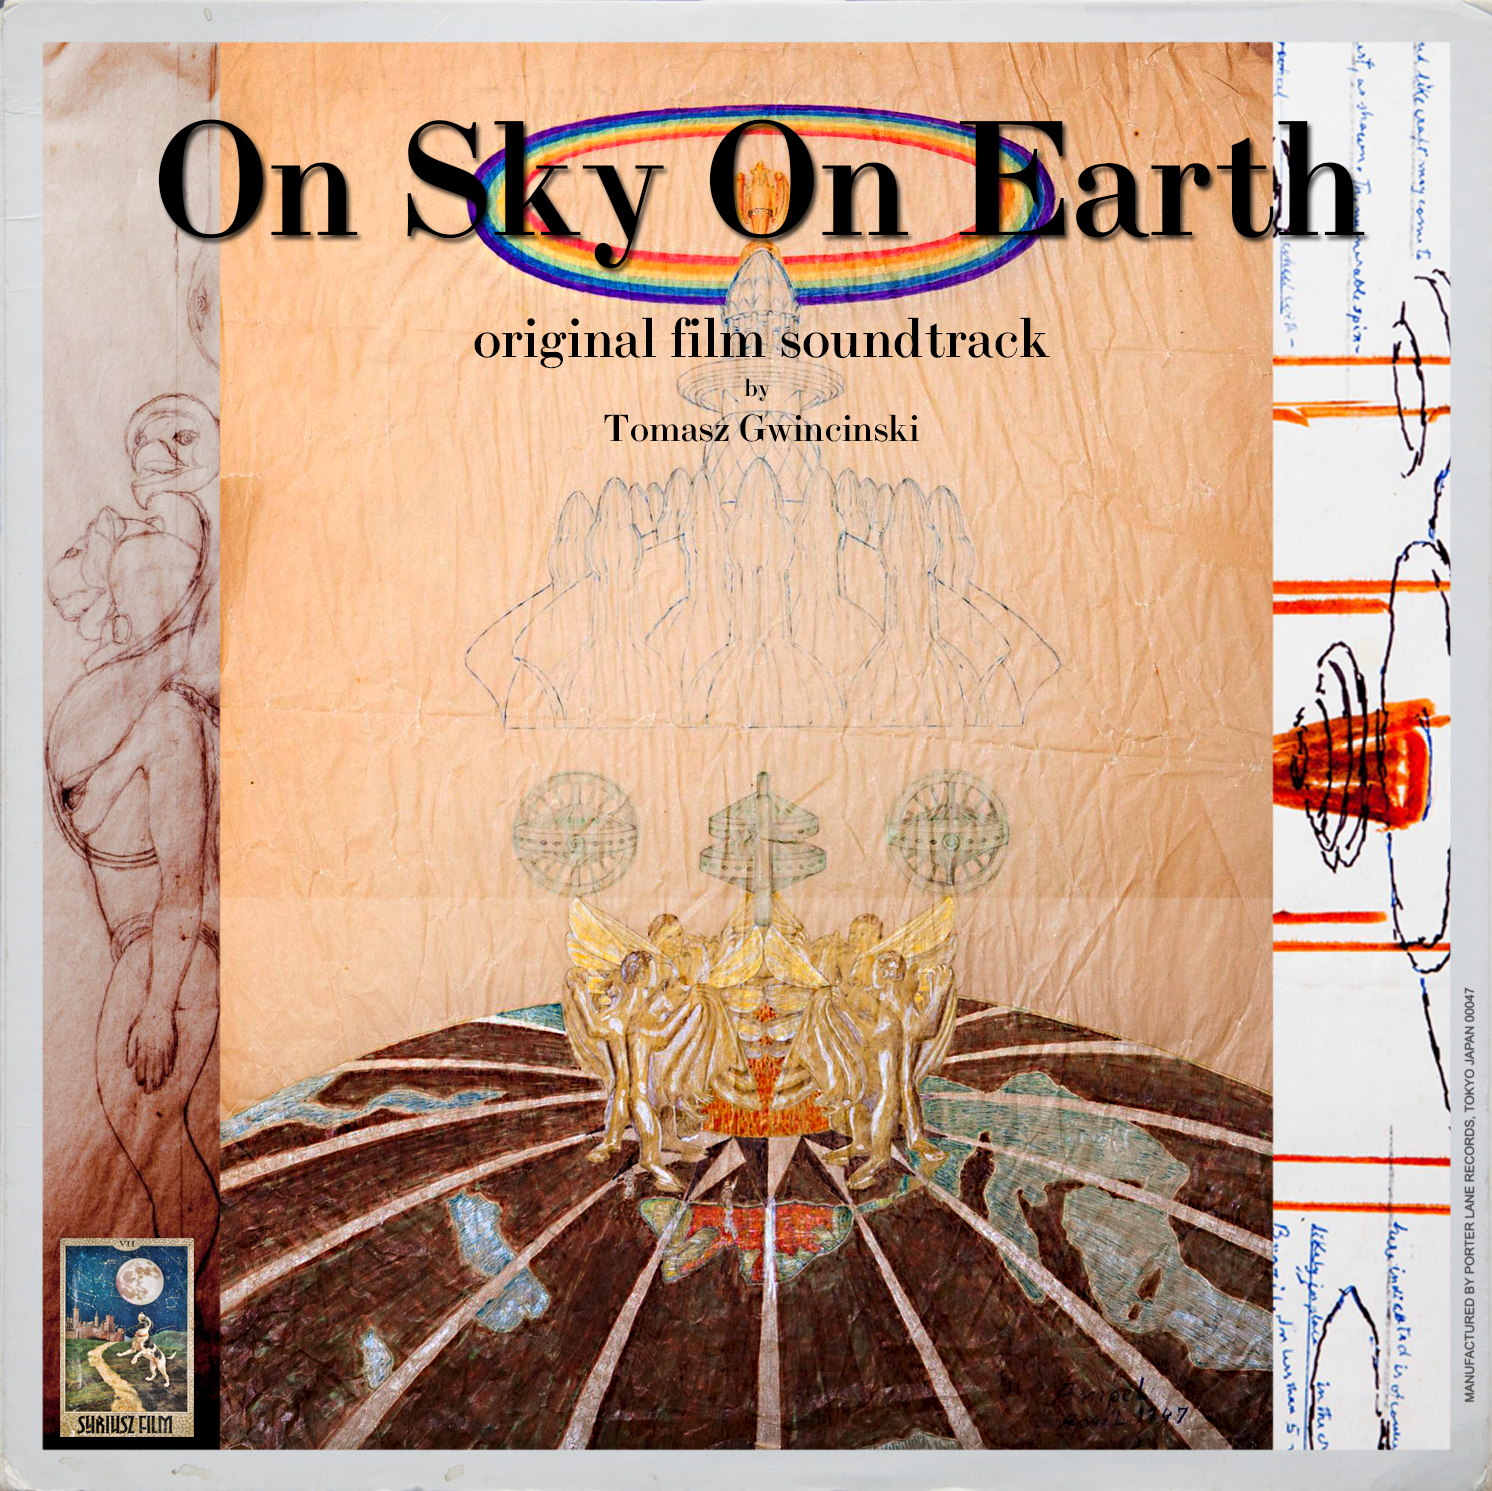 Tomasz-Gwincinski-On-sky-on-earth-OST